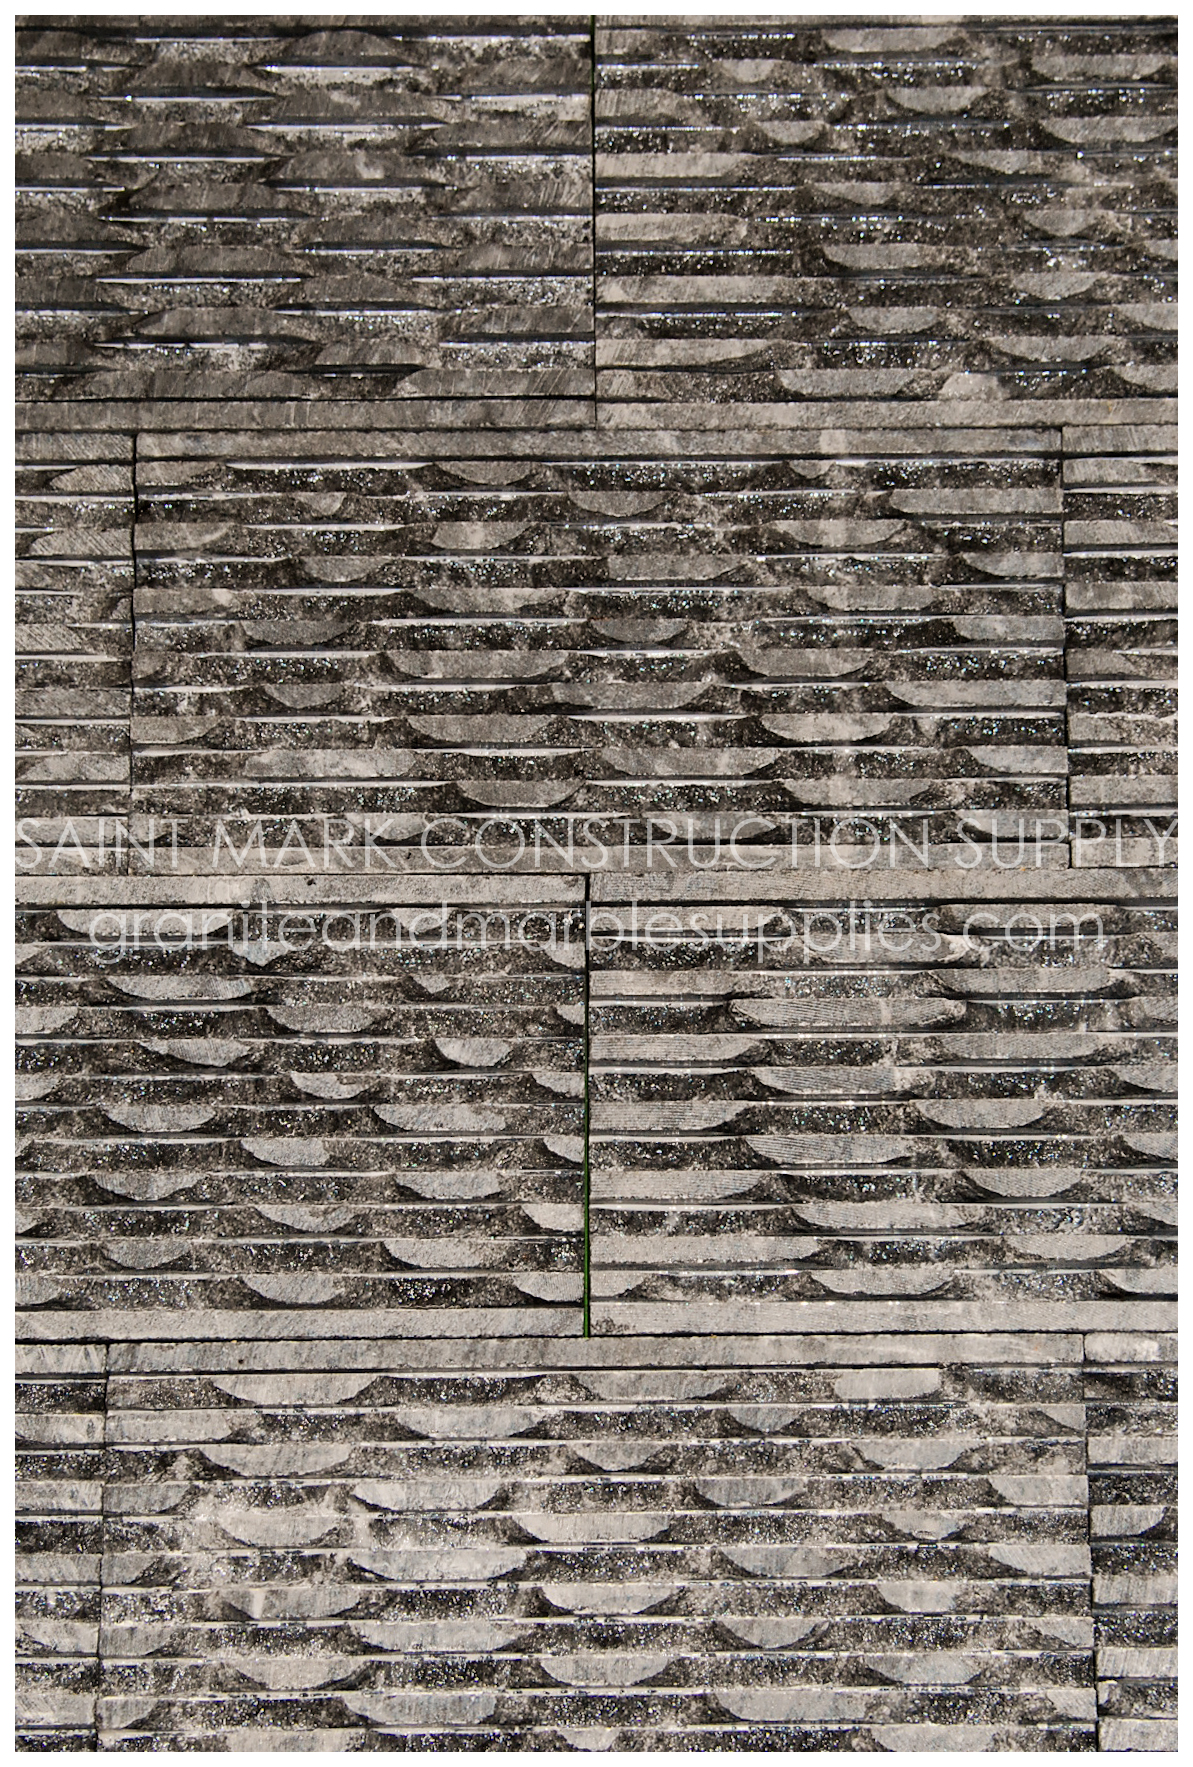 Decorative Natural Stones Saint Mark Construction Supply